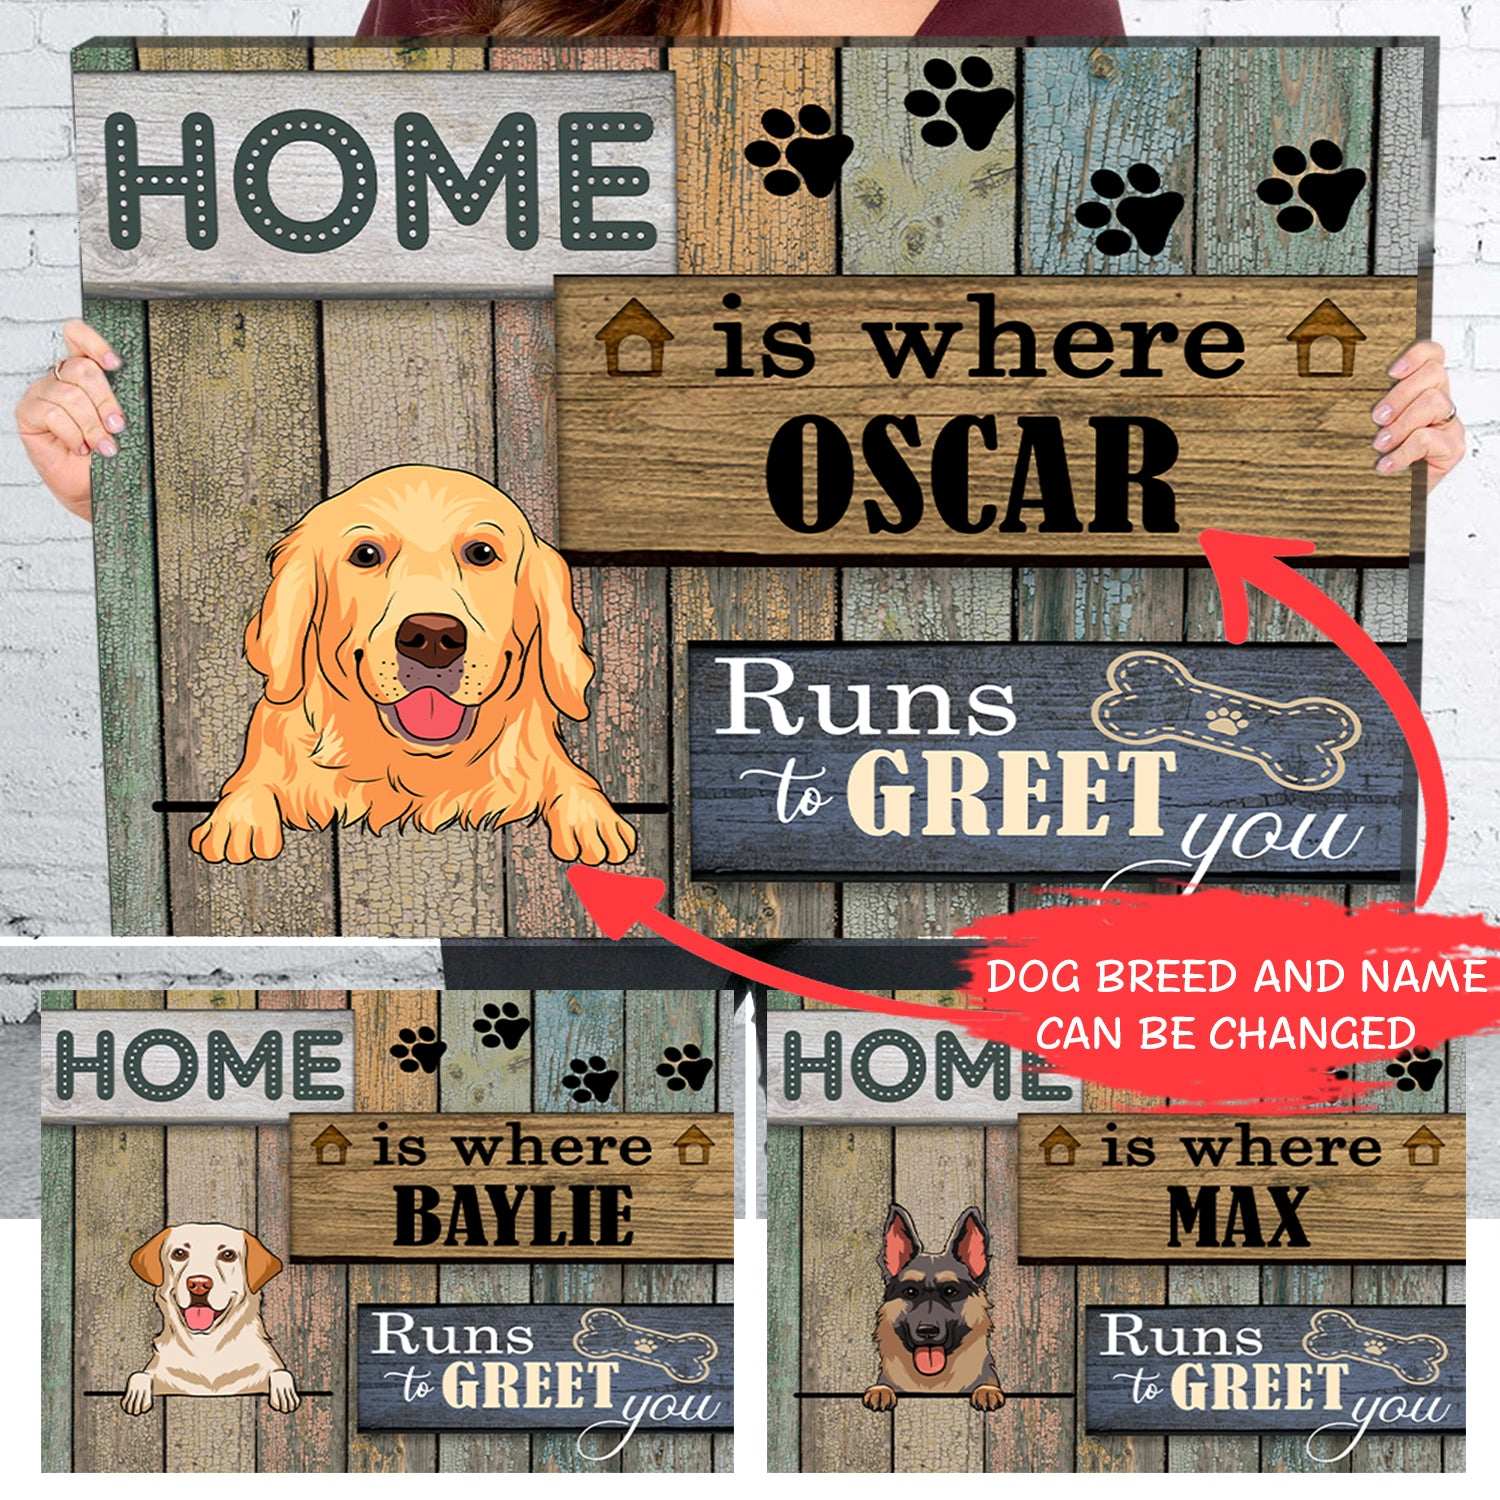 Home is where the dog runs to greet you - Personalized custom canvas